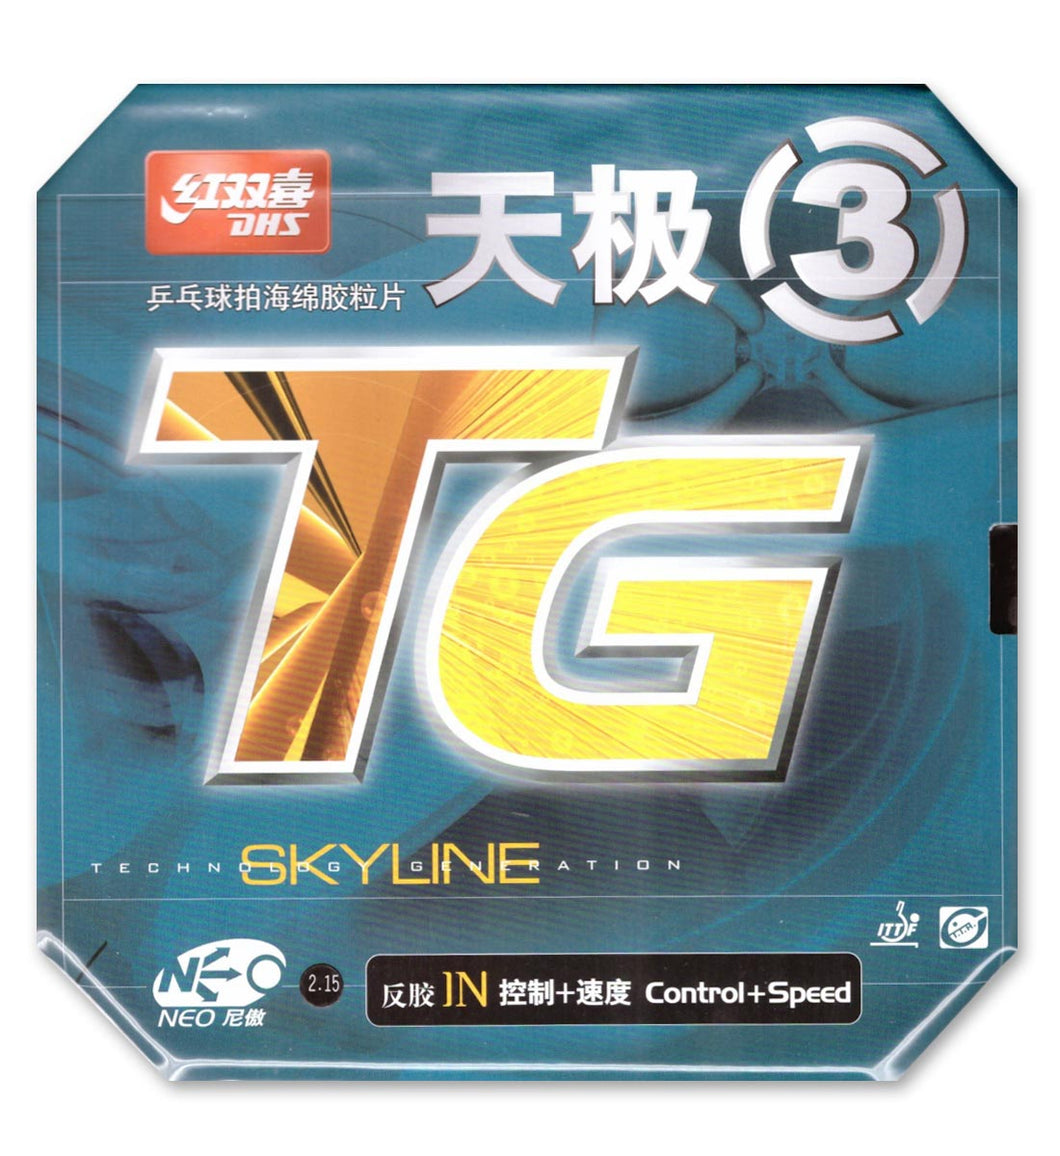 DHS Skyline TG3 Neo